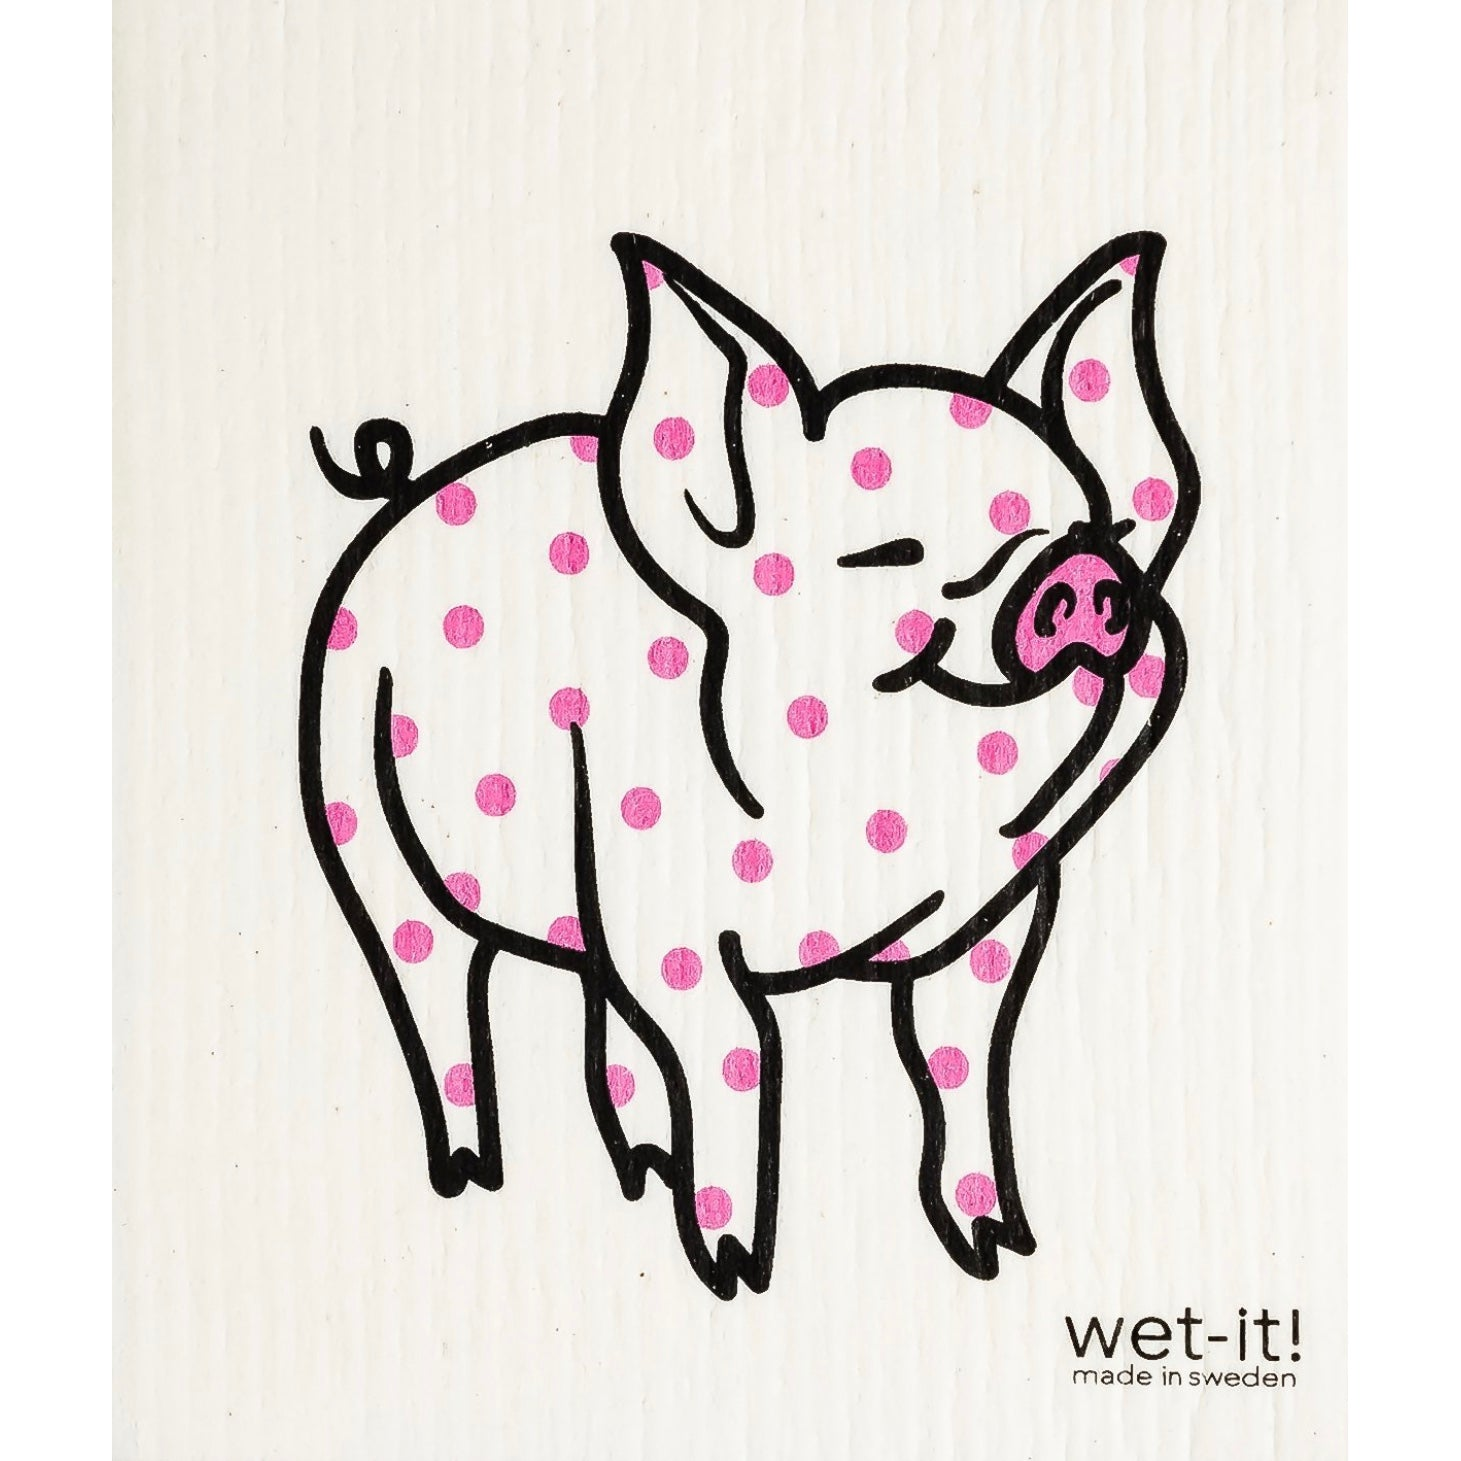 Wet it! Pink Polka Dot Pig Swedish Cloth